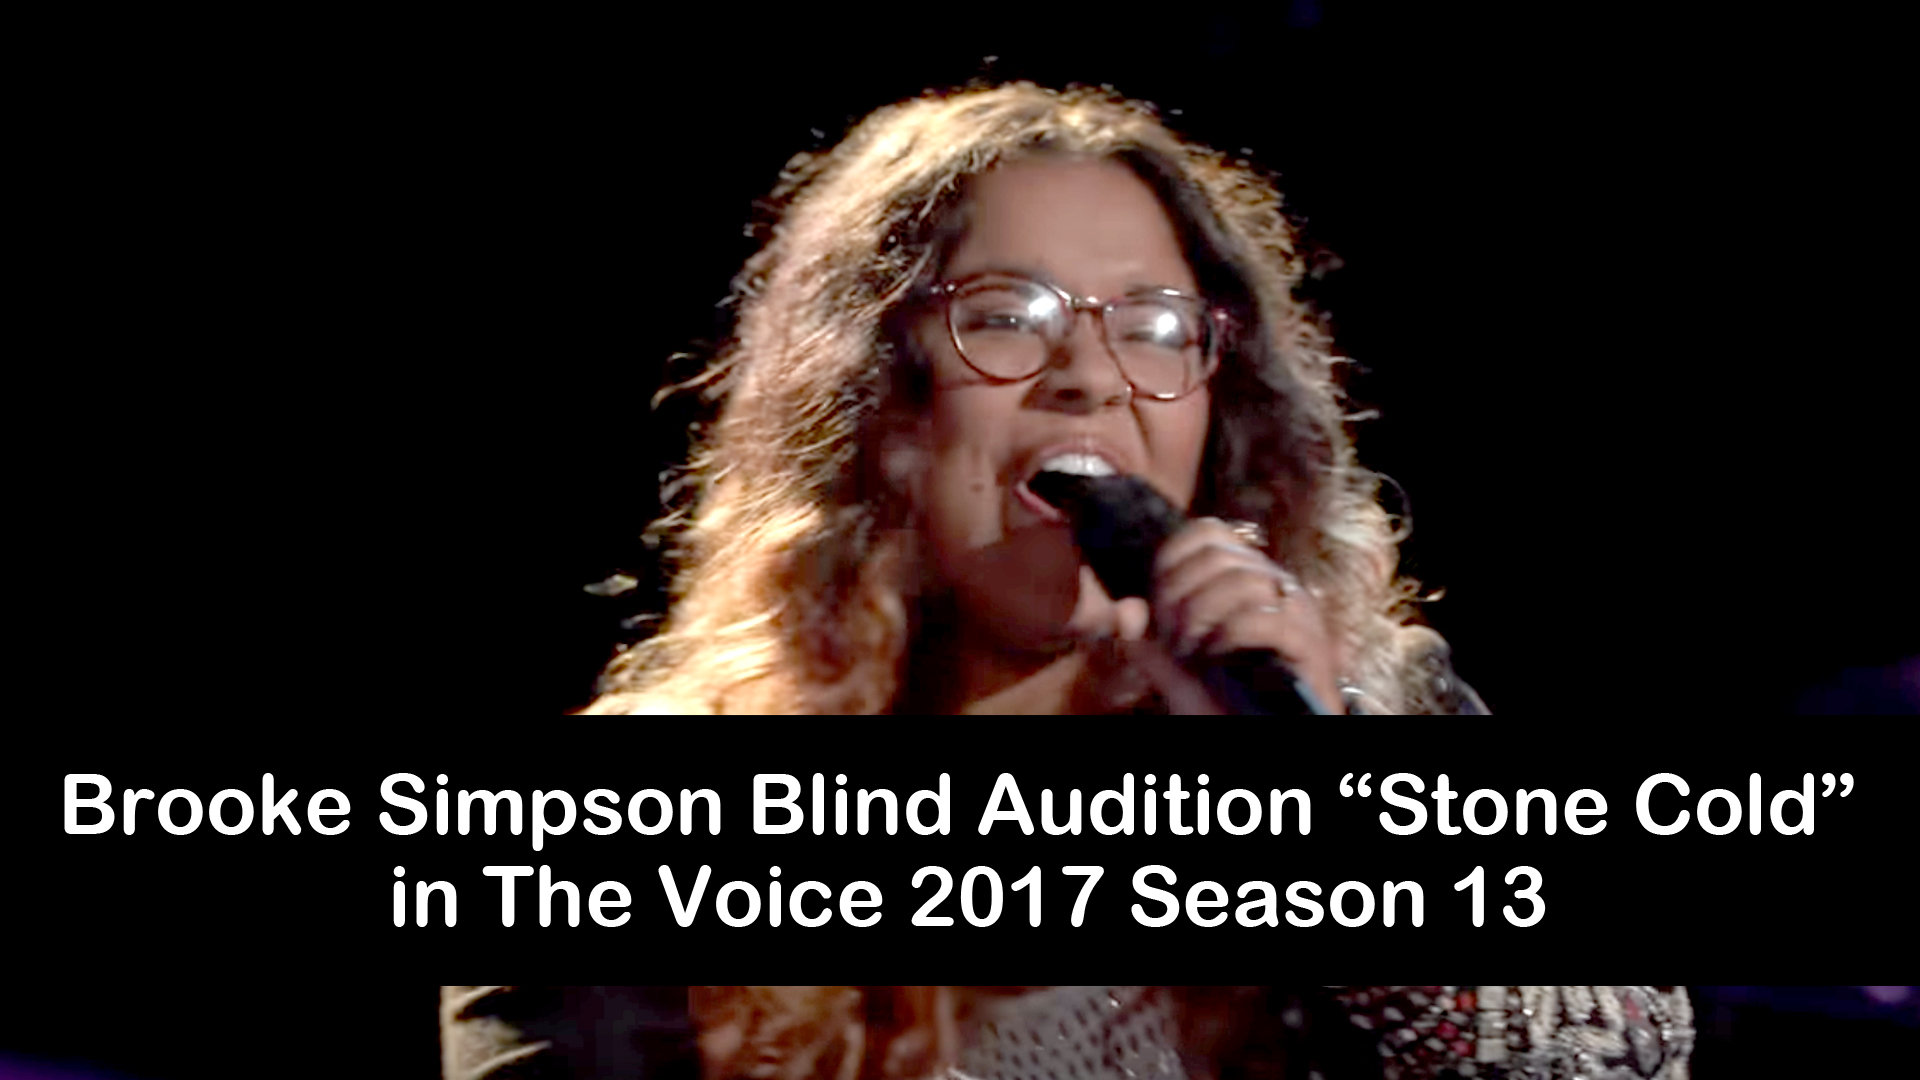 "Brooke Simpson Blind Audition ""Stone Cold"" in The Voice 2017 Season 13"